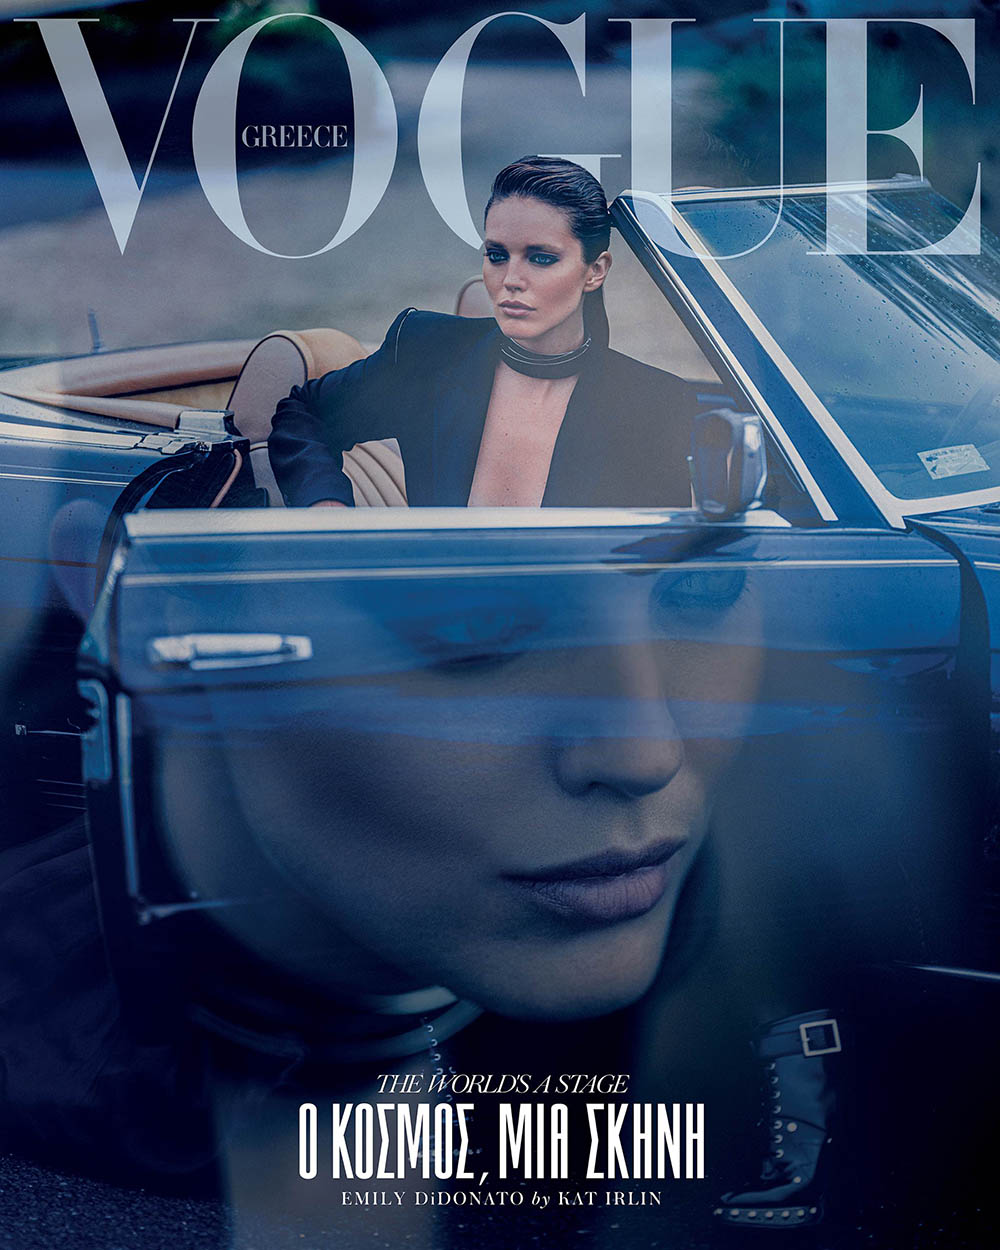 Emily DiDonato covers Vogue Greece October 2019 by Kat Irlin